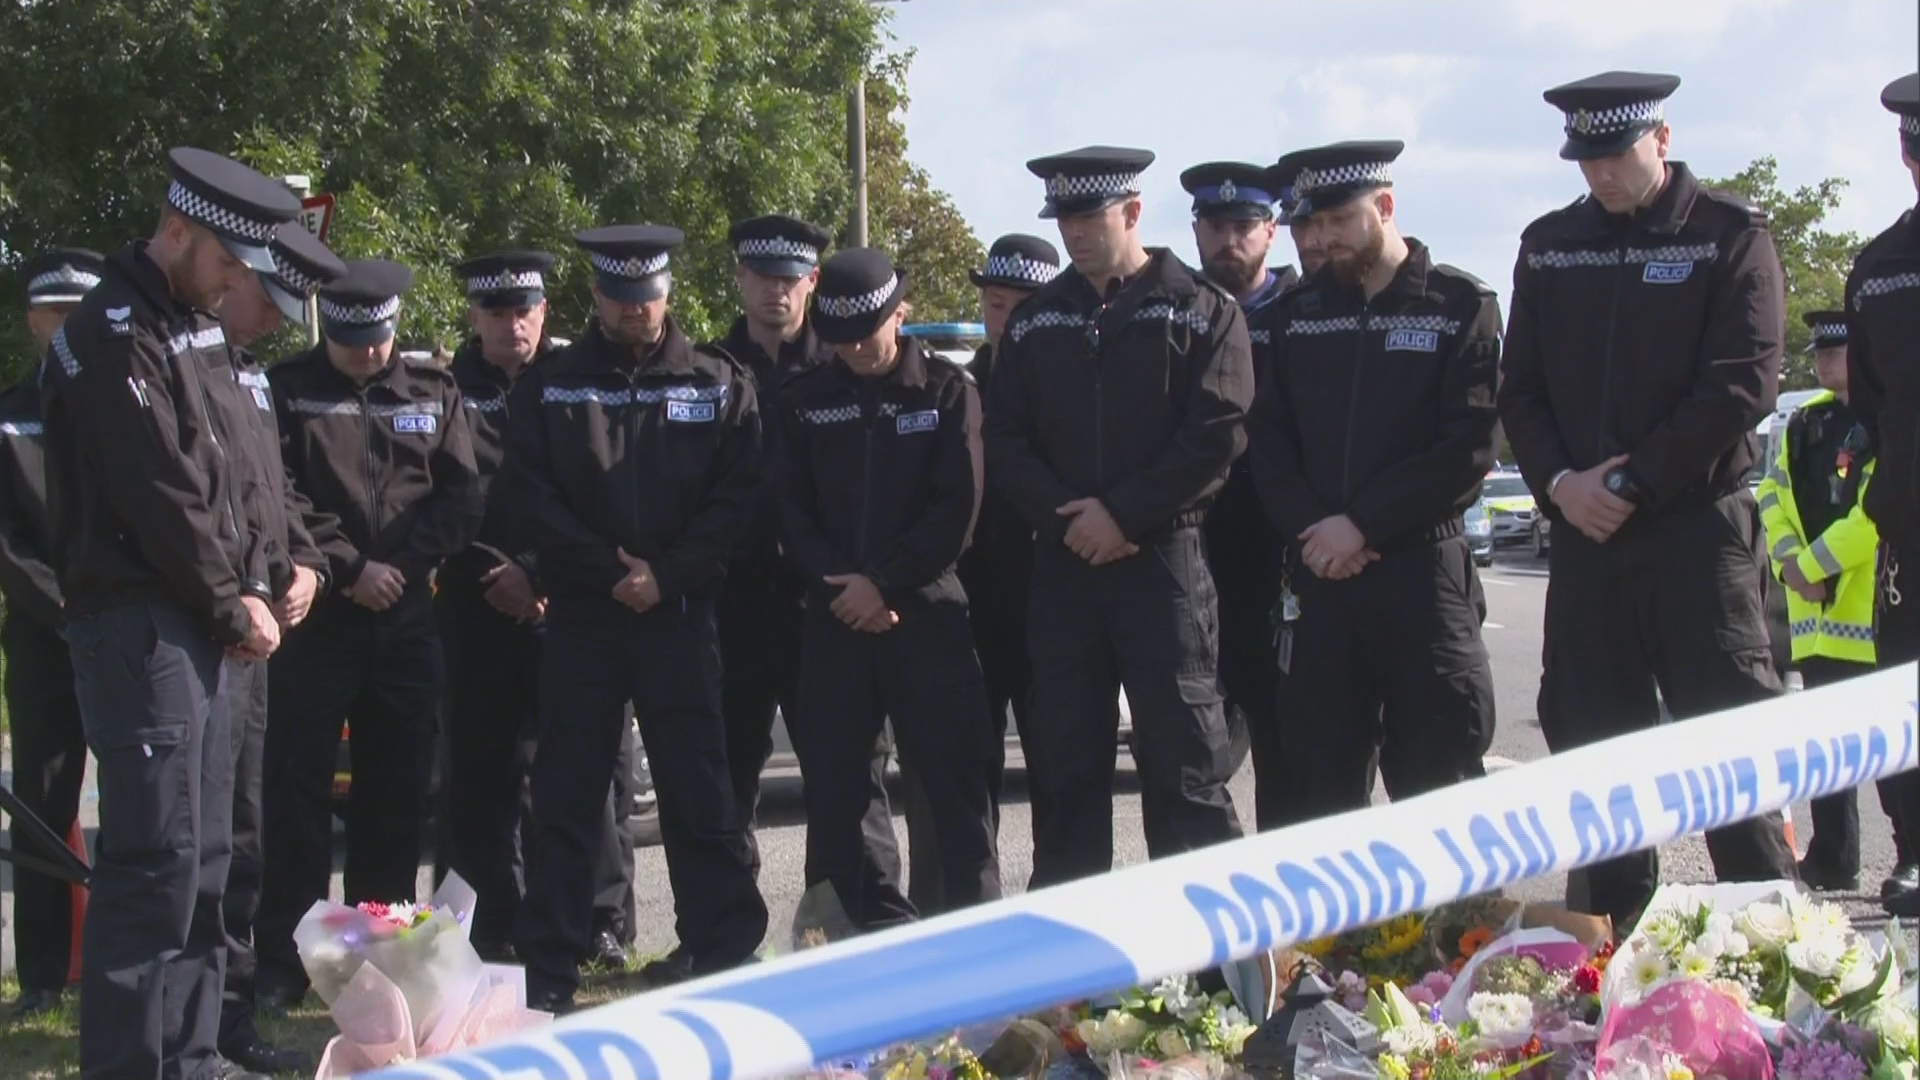 Pc Andrew Harper: Minute's Silence To Be Held For Police Officer Killed On Duty Last Week